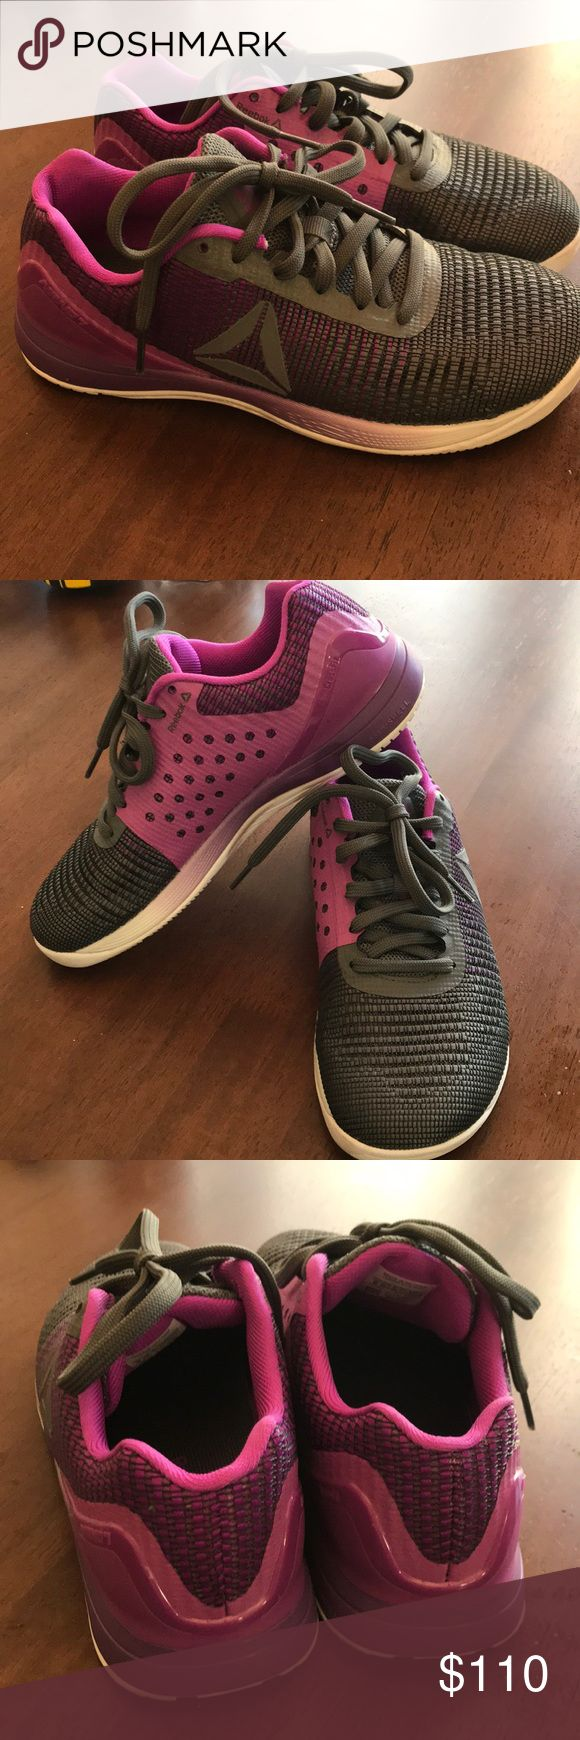 Crossfit Nano 7 weave (sz 8) Worn for one WOD. As evidenced by